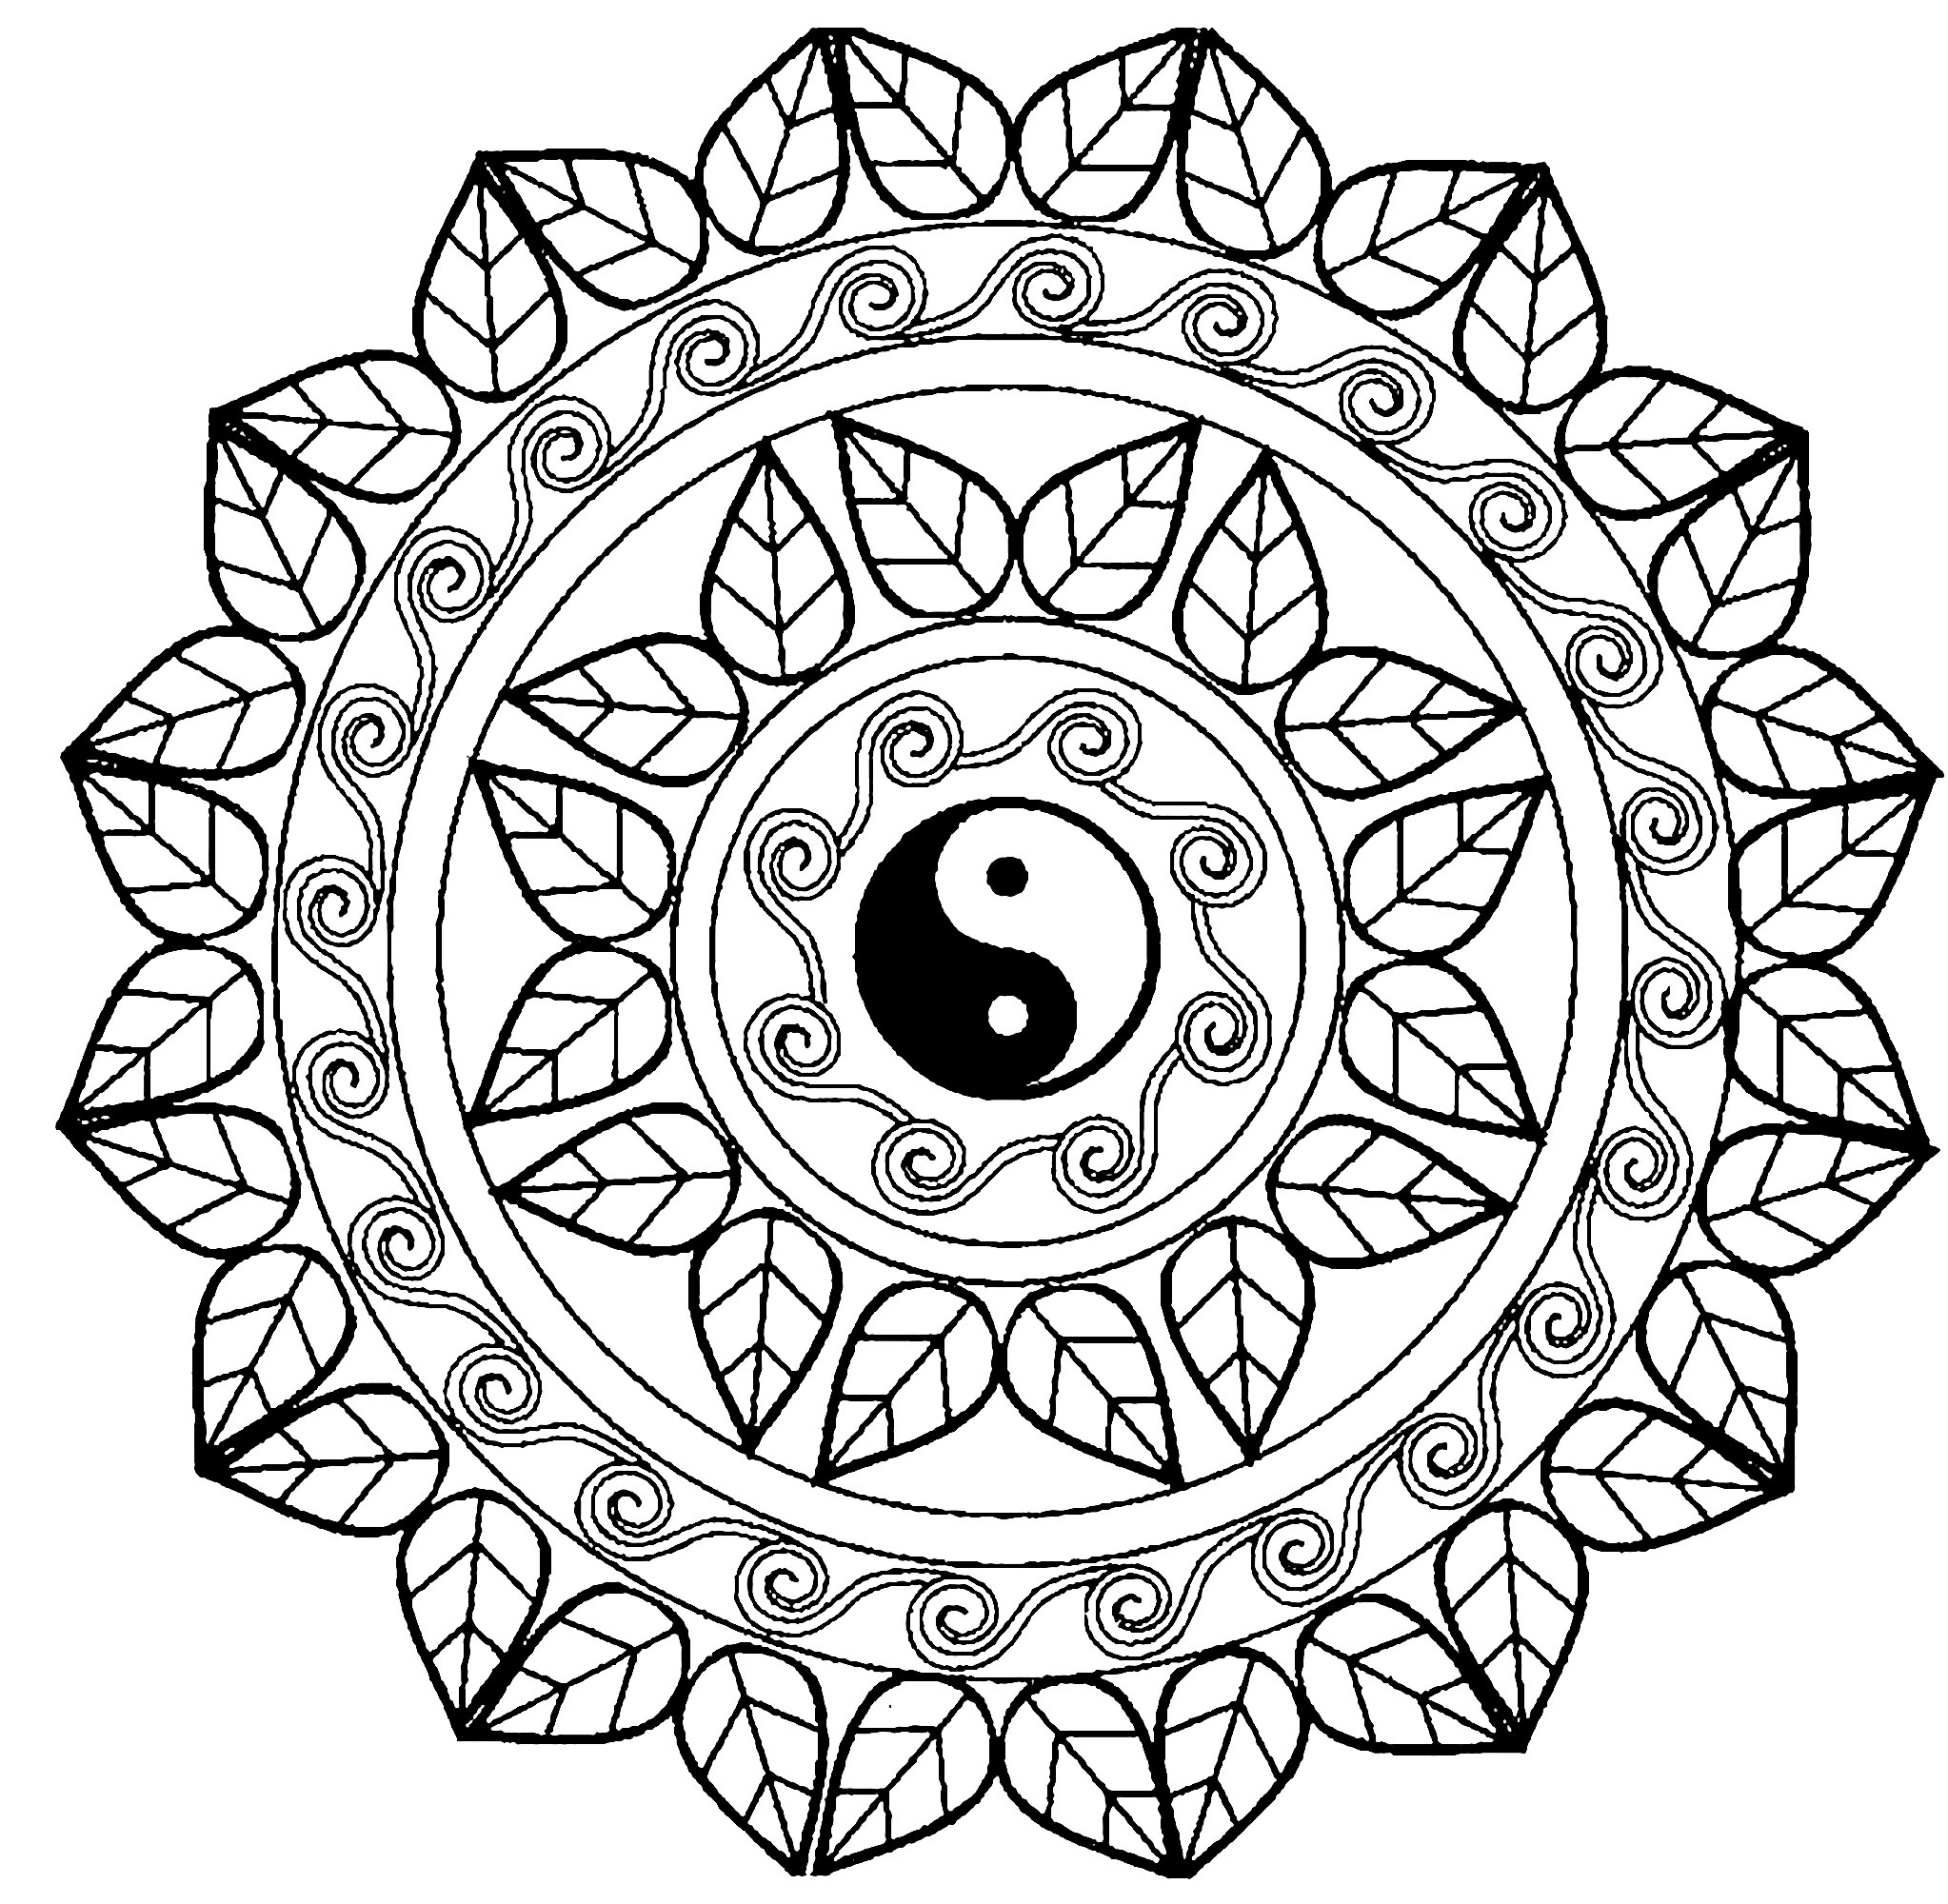 Mandala Coloring Pages For Adults Interesting Mandala Yin Yang  Mandalas  Coloring Pages For Adults  Justcolor Decorating Design